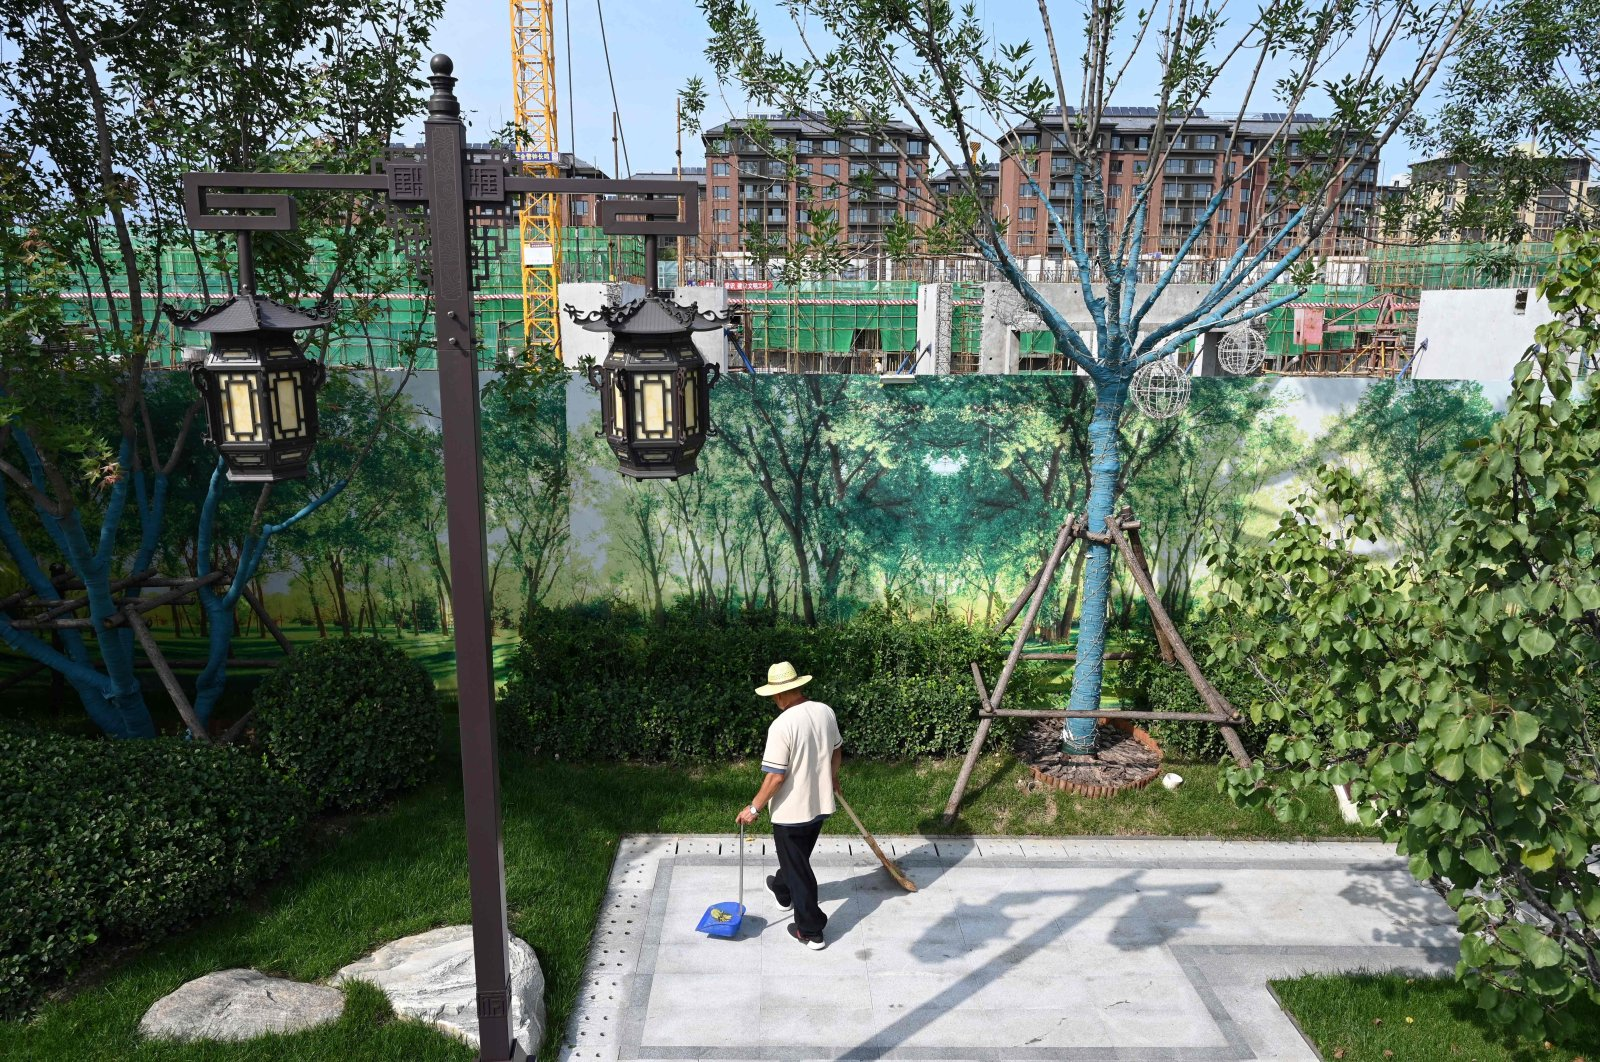 A worker cleans a display area next to the construction site of an Evergrande housing complex in Beijing, China, Sept. 13, 2021. (AFP Photo)